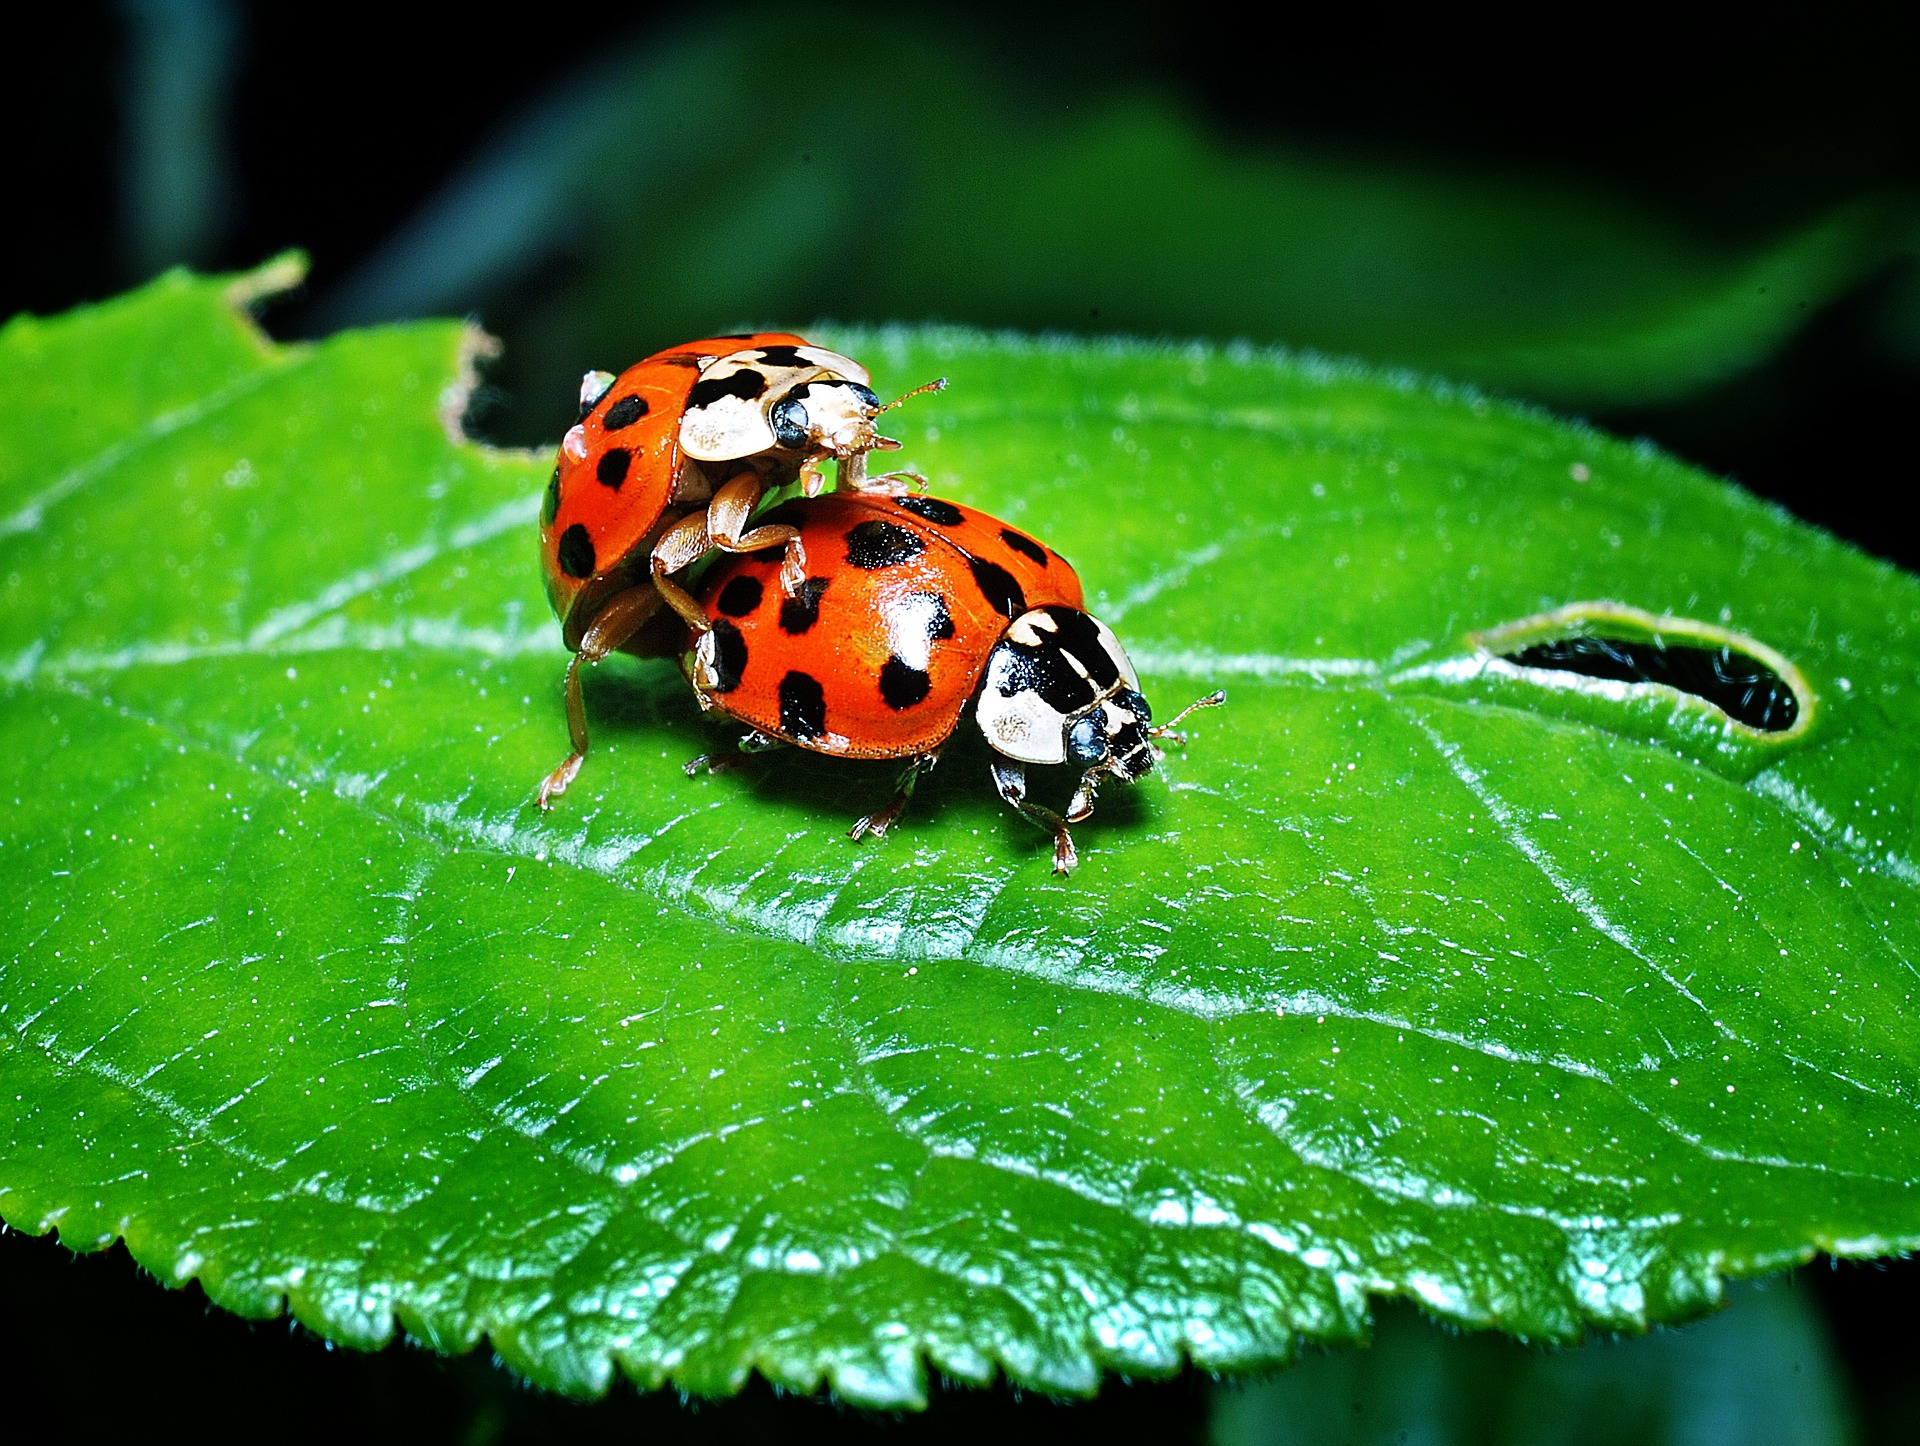 insect-3373039_1920_1.jpg